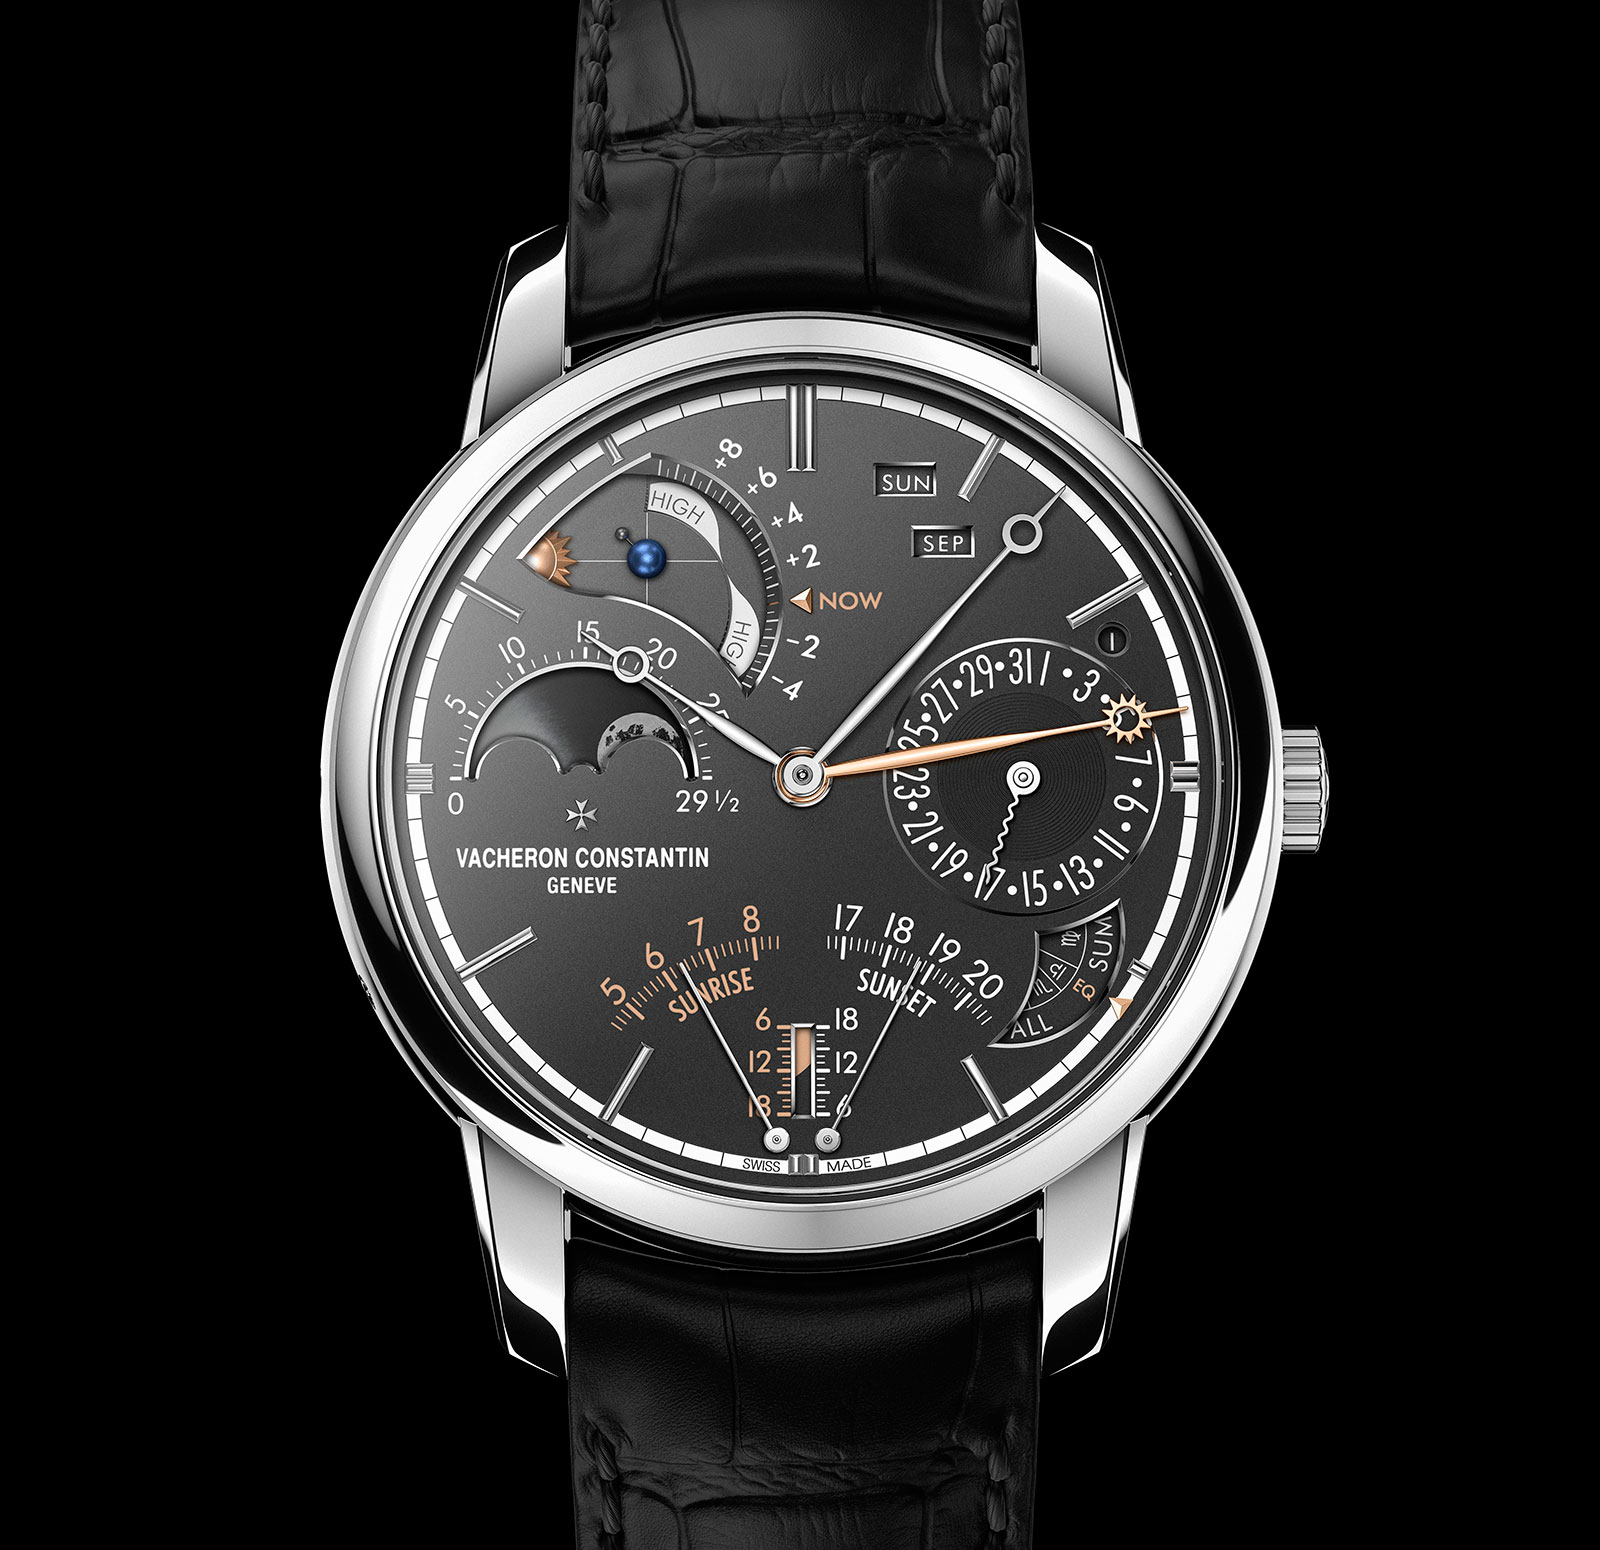 Vacheron Constantin Celestia Astronomical Grand Complication 3600-8